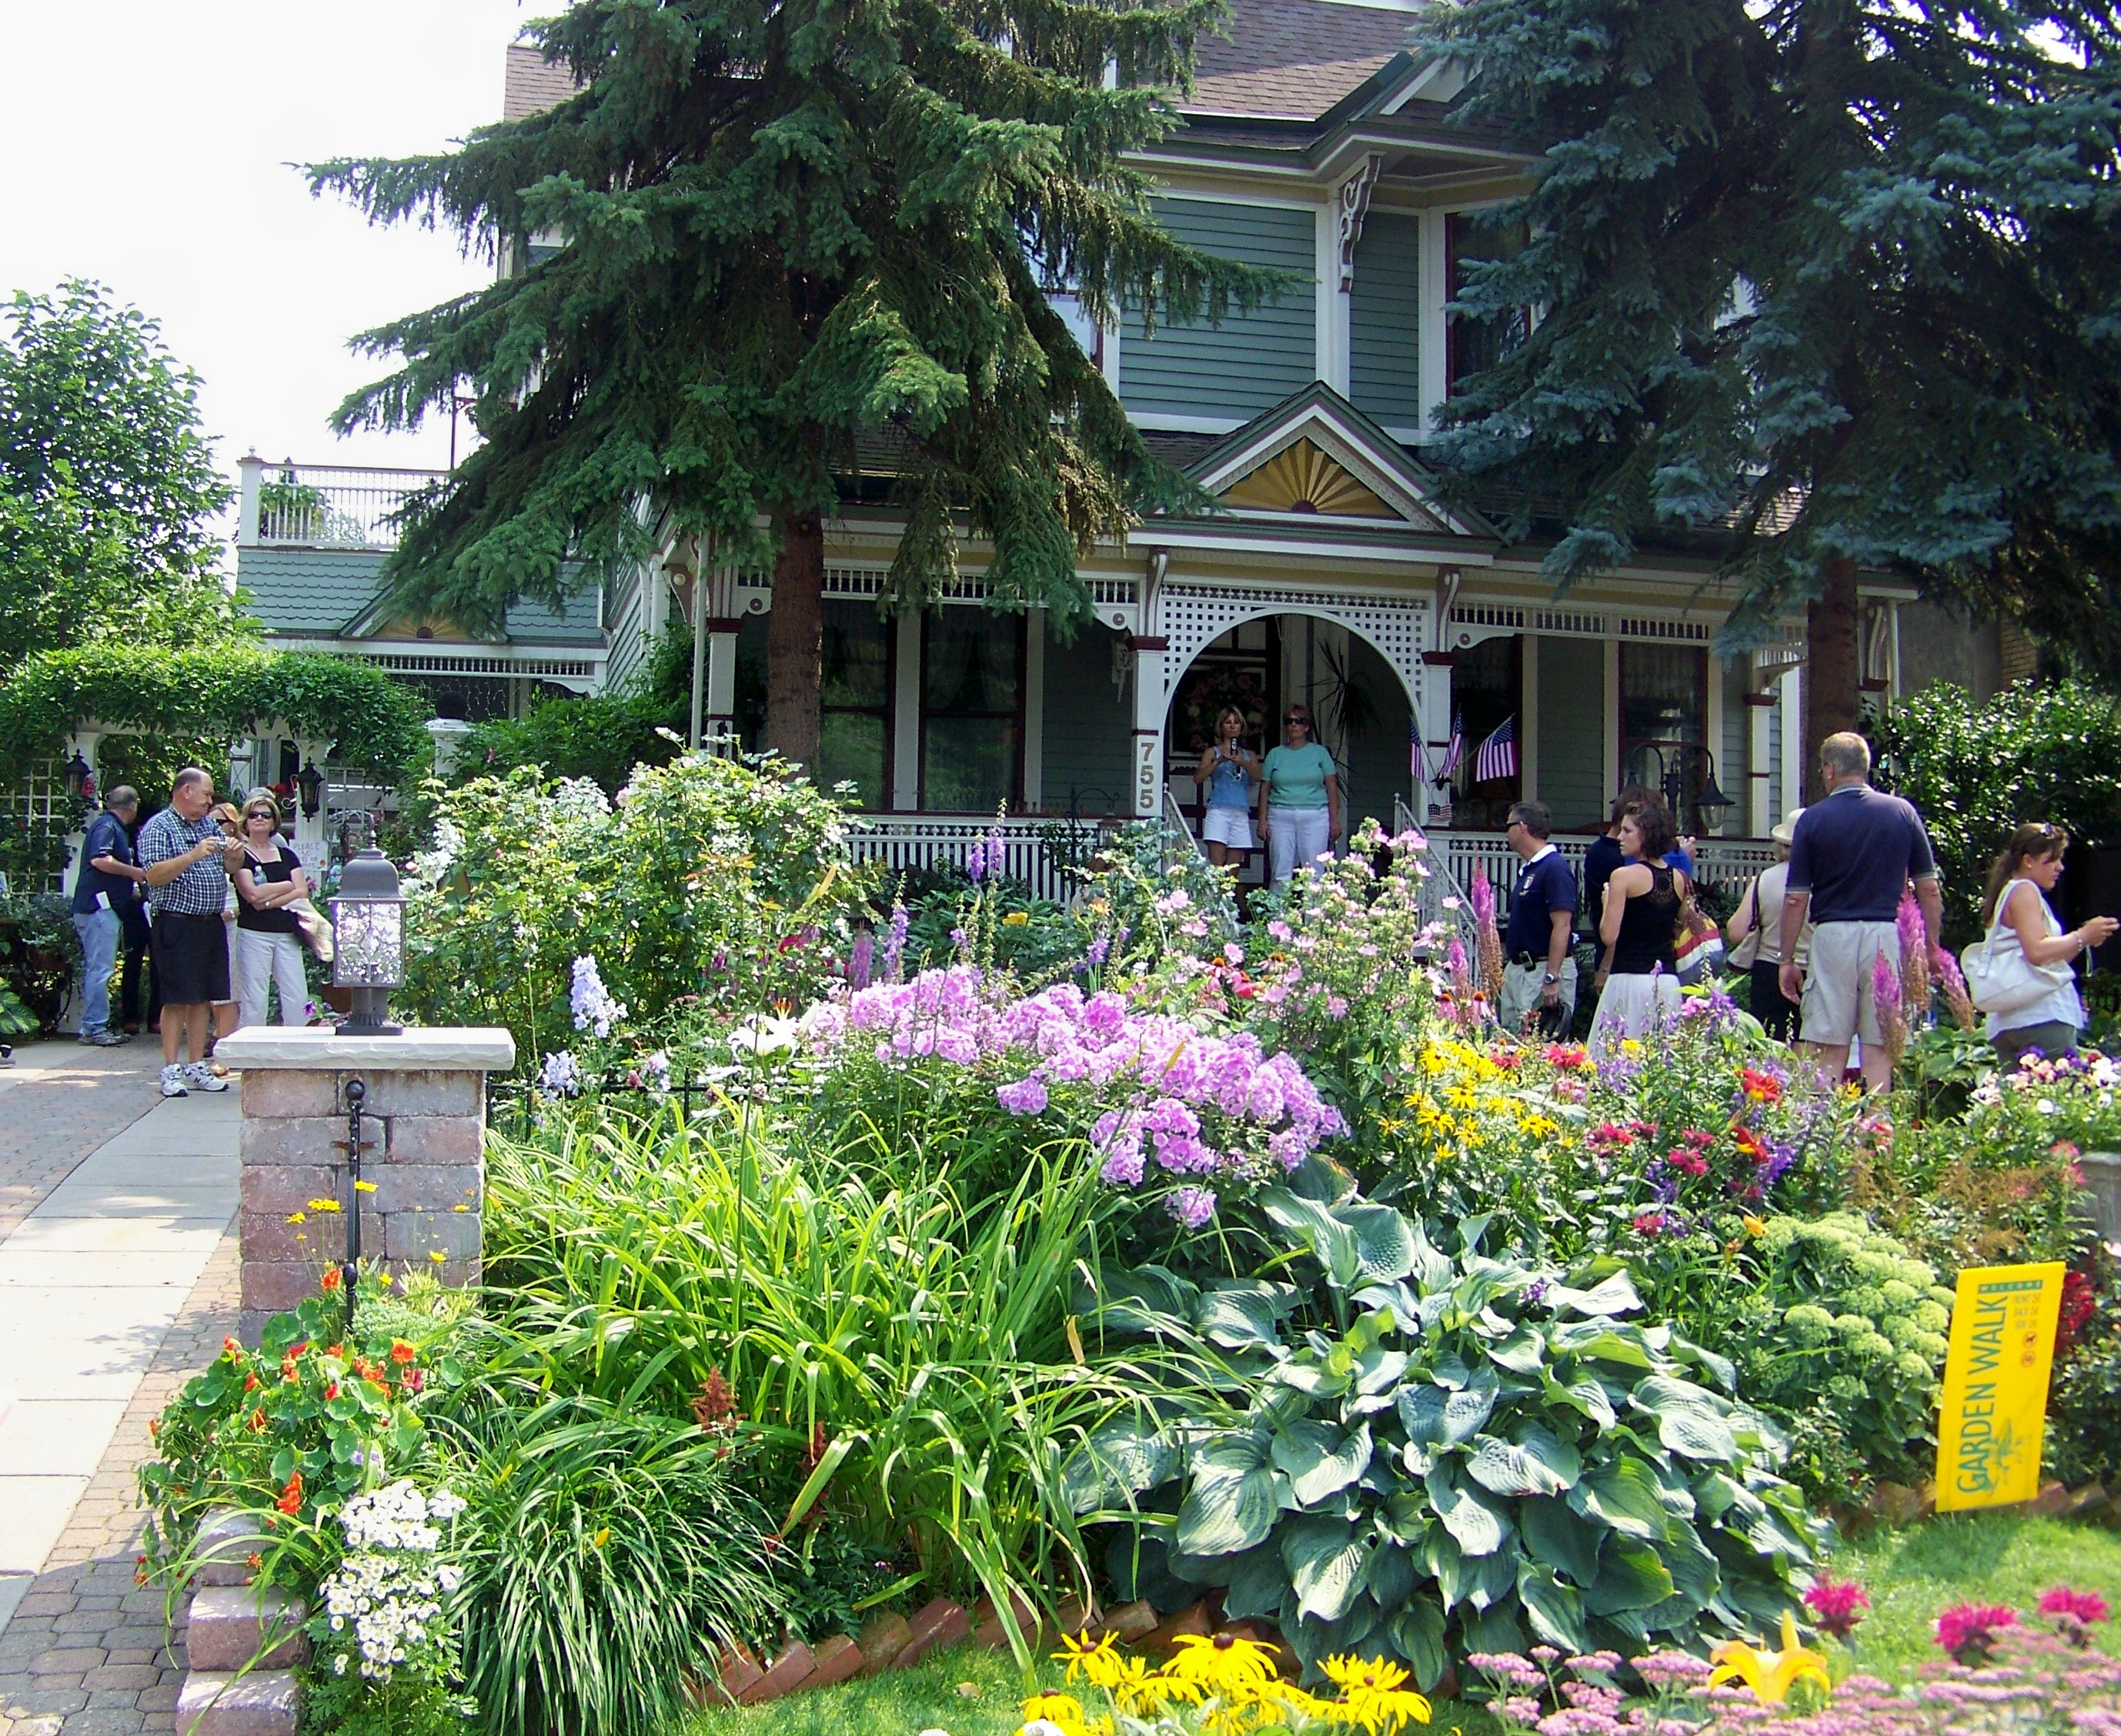 Buffalo Garden Walk: Enjoy A Great Garden Tour Experience